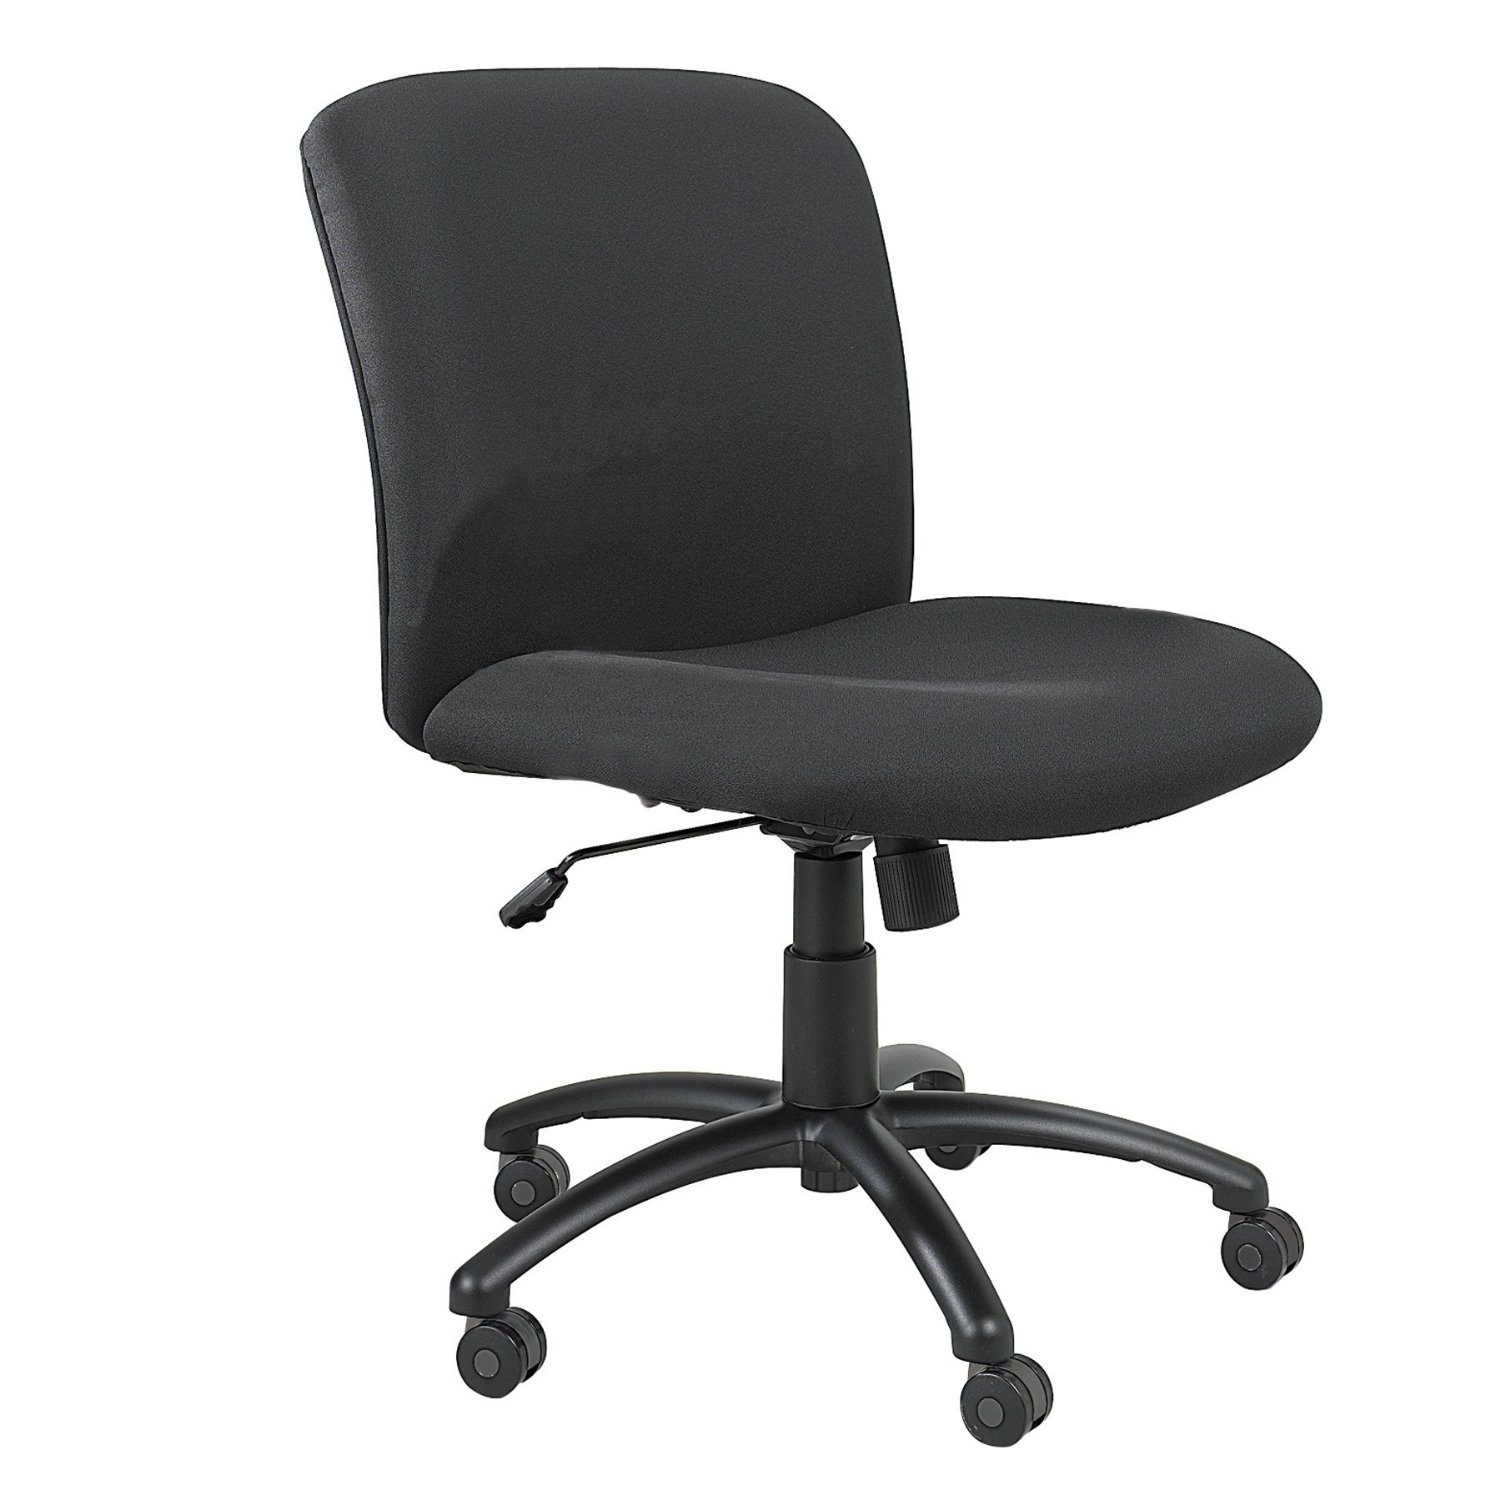 Office Chair For Tall Person Safco Office Chairs Which Ones The Best Office Chairs